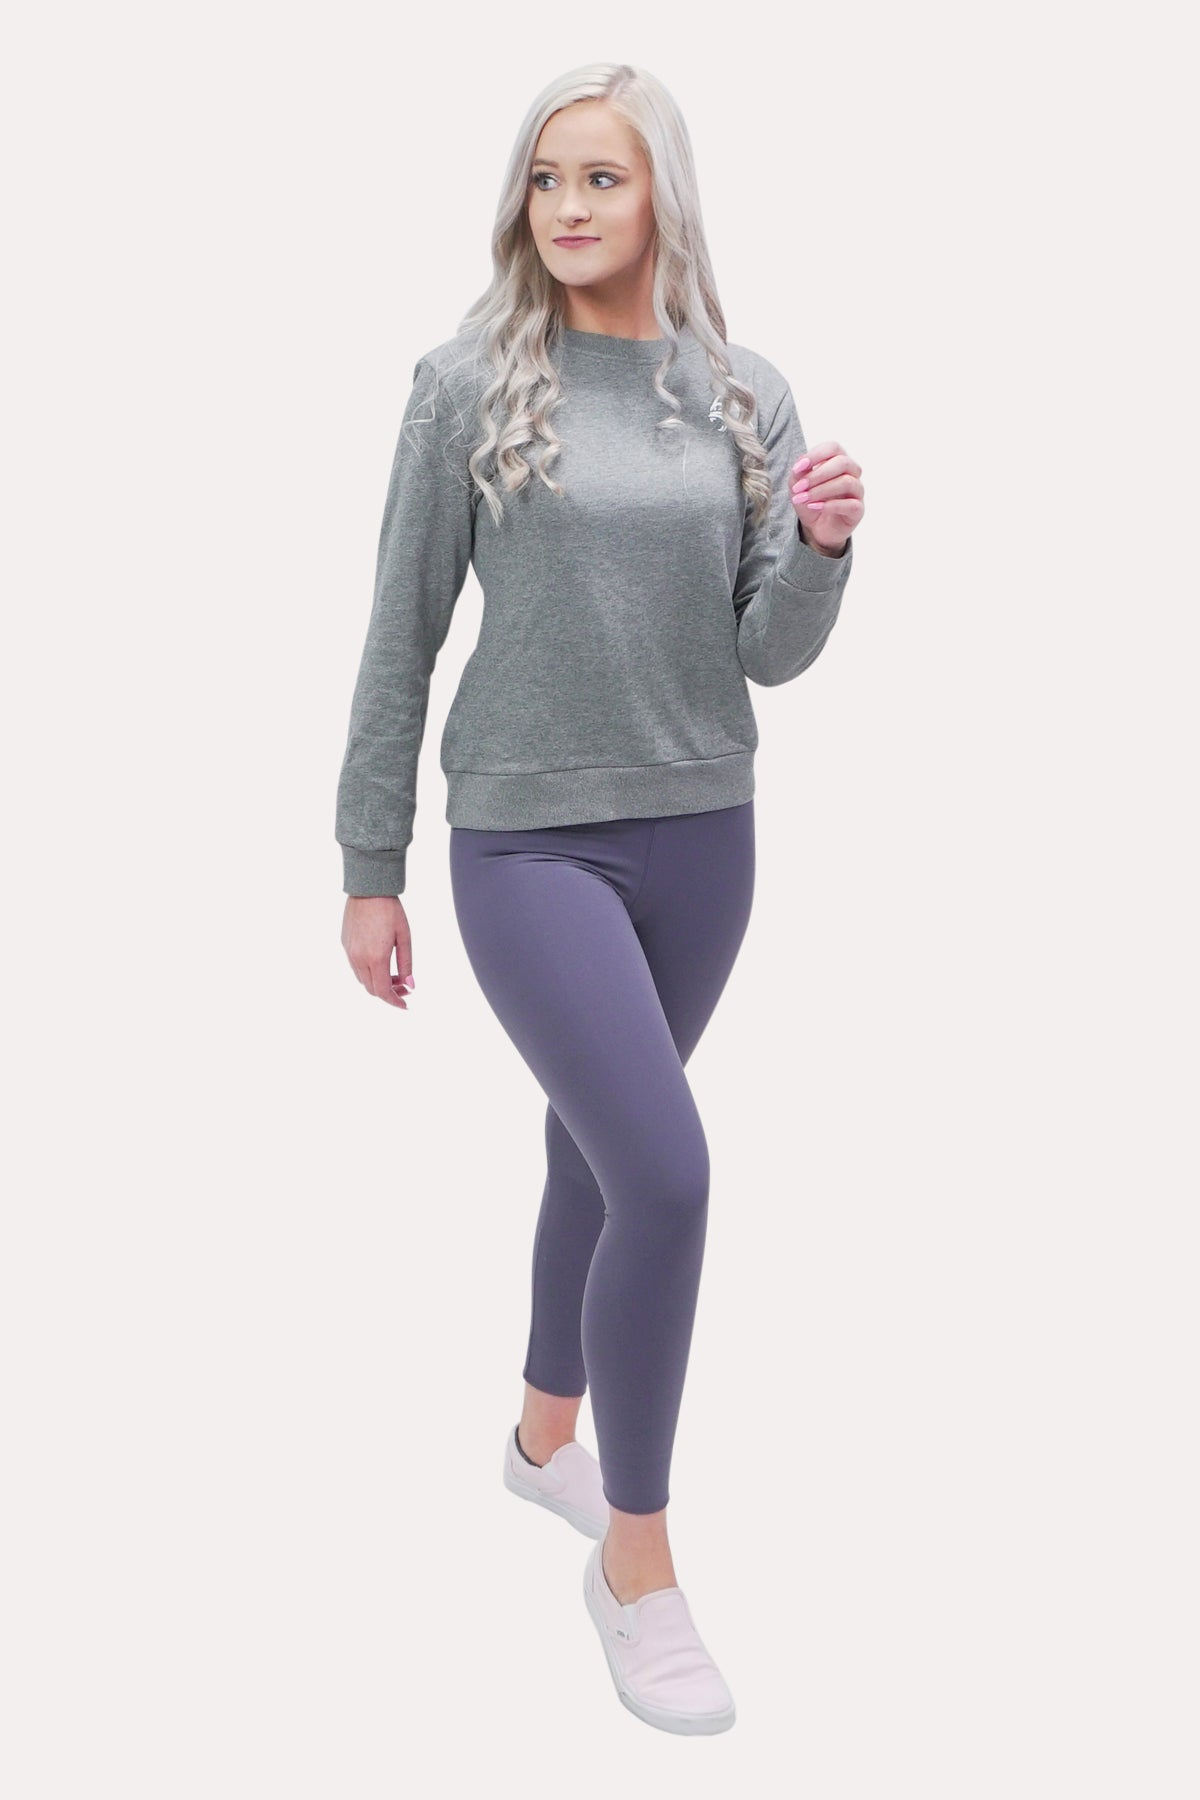 Women's Crew Neck Sweatshirt - Minimal Grey